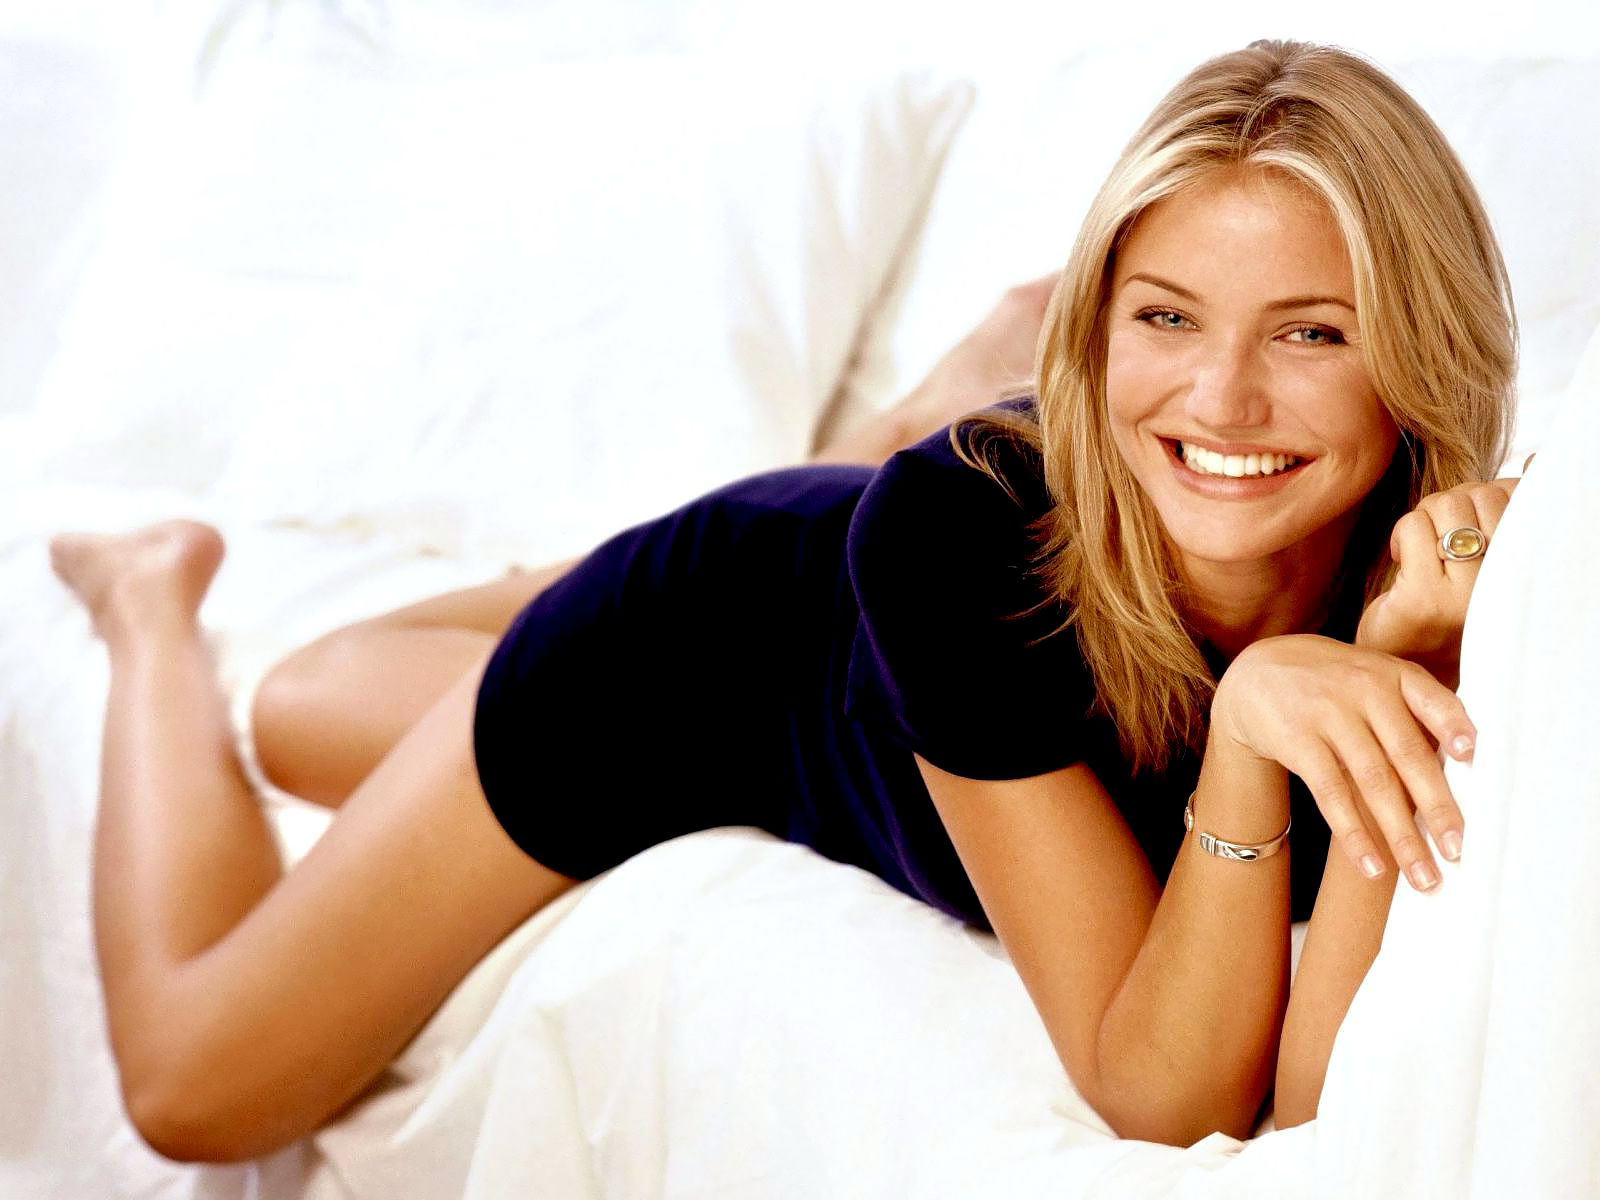 http://1.bp.blogspot.com/-ldy5Cl3Re1Q/UPO8YAOnm2I/AAAAAAAACsI/G0gb4cIKYkc/s1600/Cameron-Diaz-Wallpapers-13.jpg